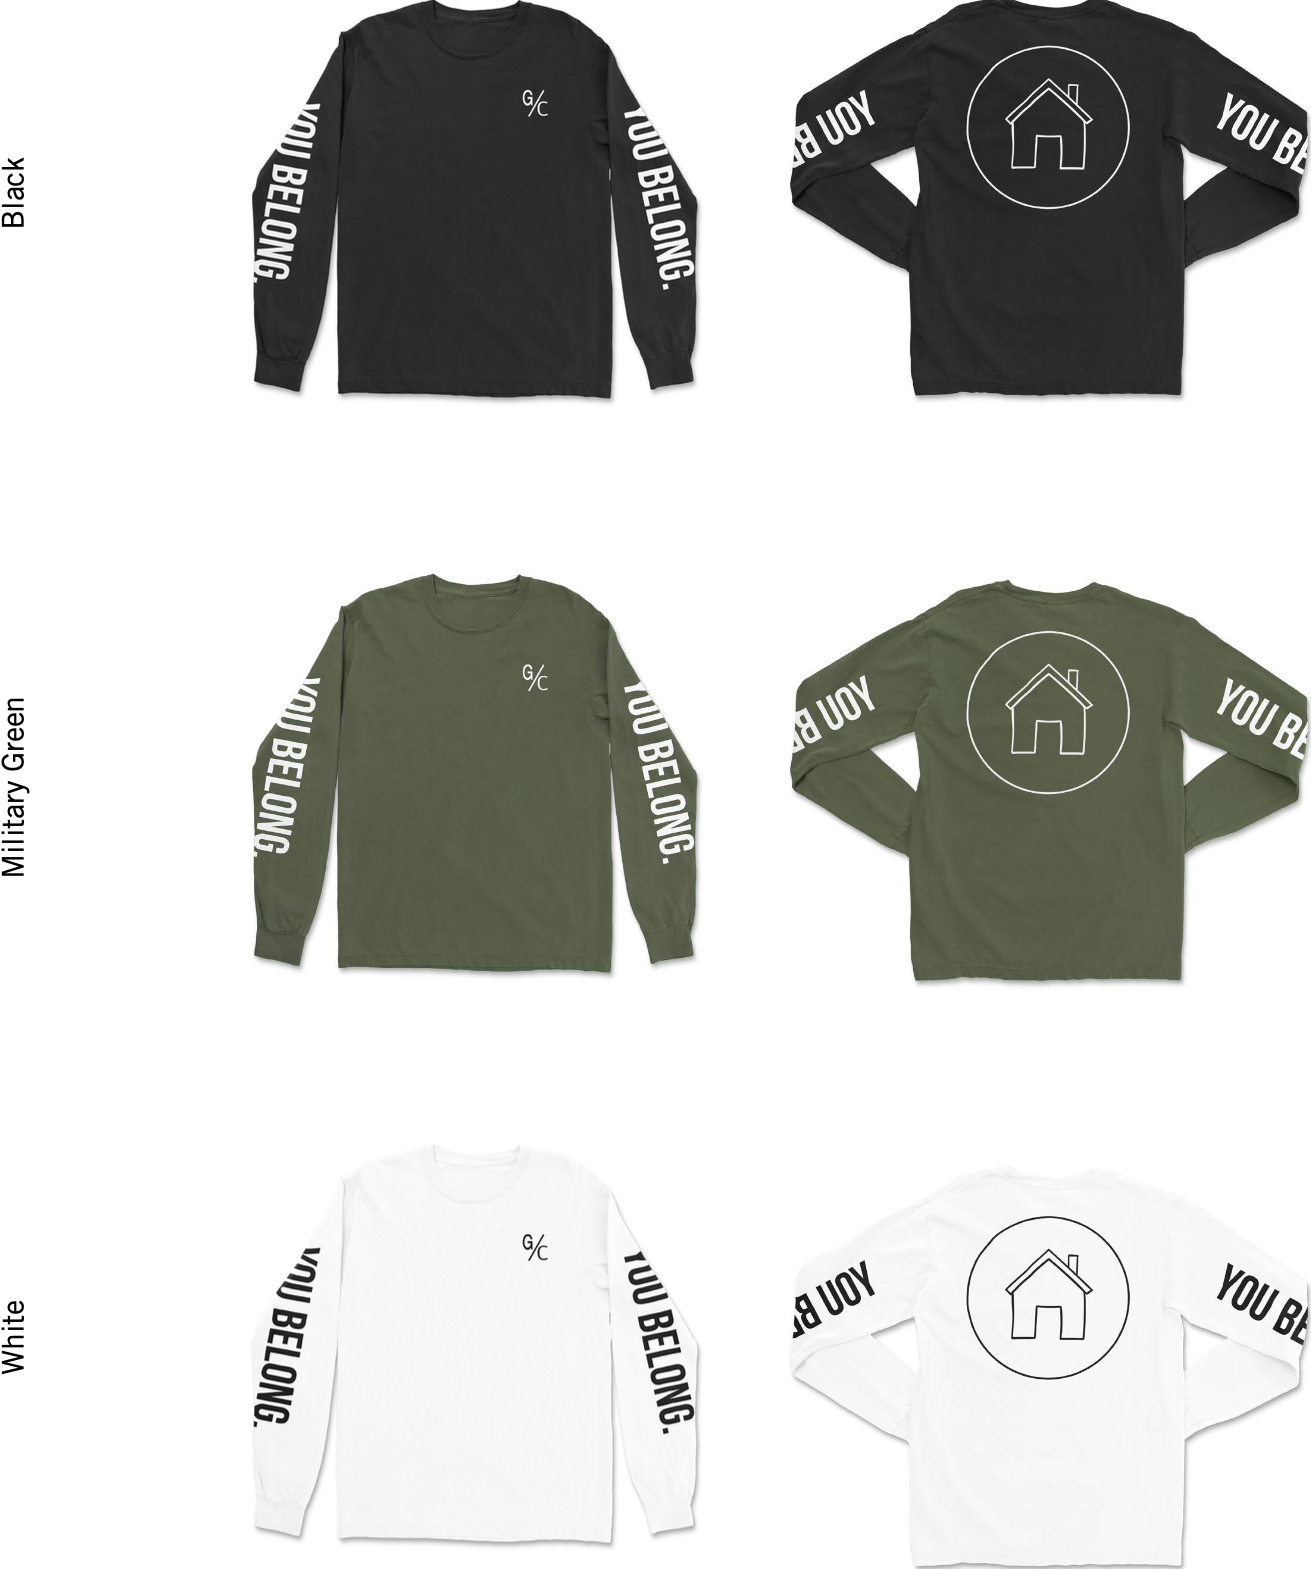 Don't miss out on a G/C Sweatshirt